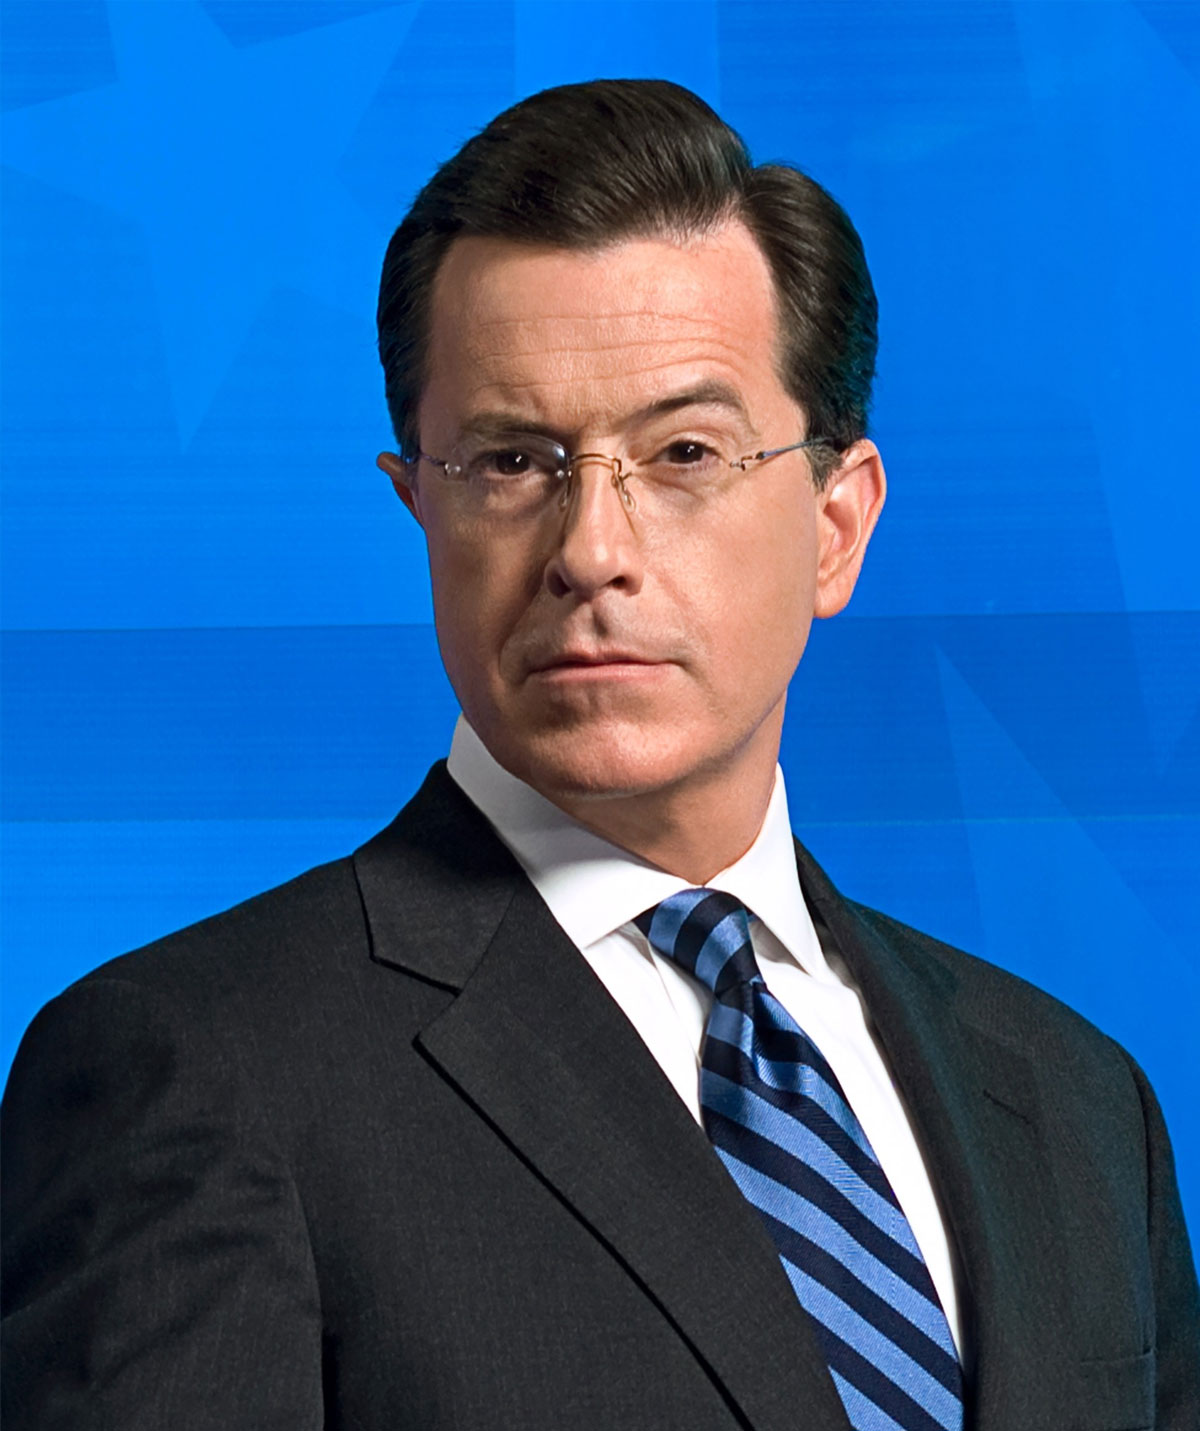 Stephen Colbert to Guest Star on 'The Office' - GeekyNews Stephen Colbert